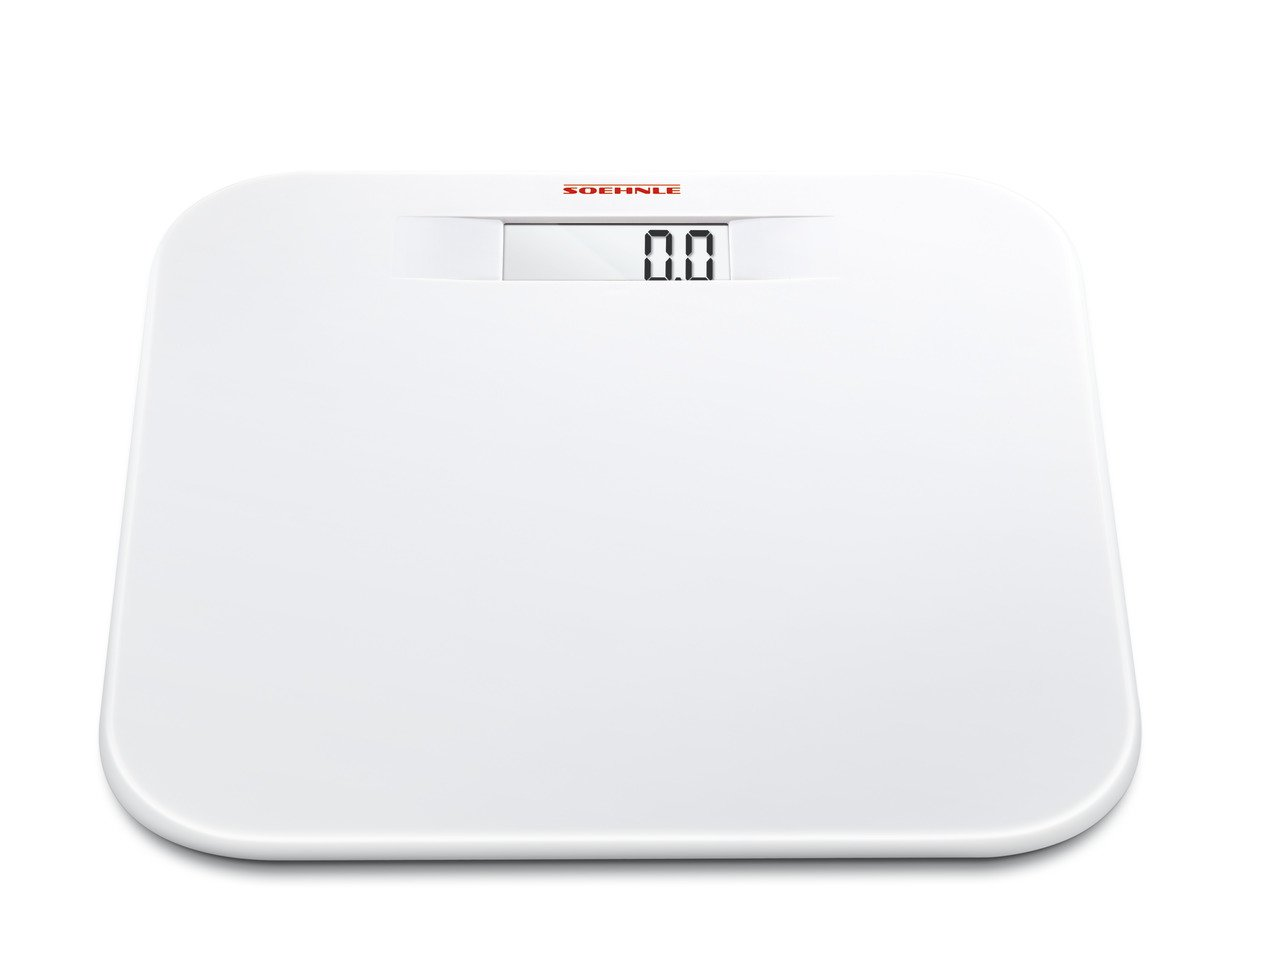 Amazon.com: Soehnle Soft Comfort Personal Scale, Digital, LCD-Digits, Safety Glass, 150 kg, 63331: Health & Personal Care